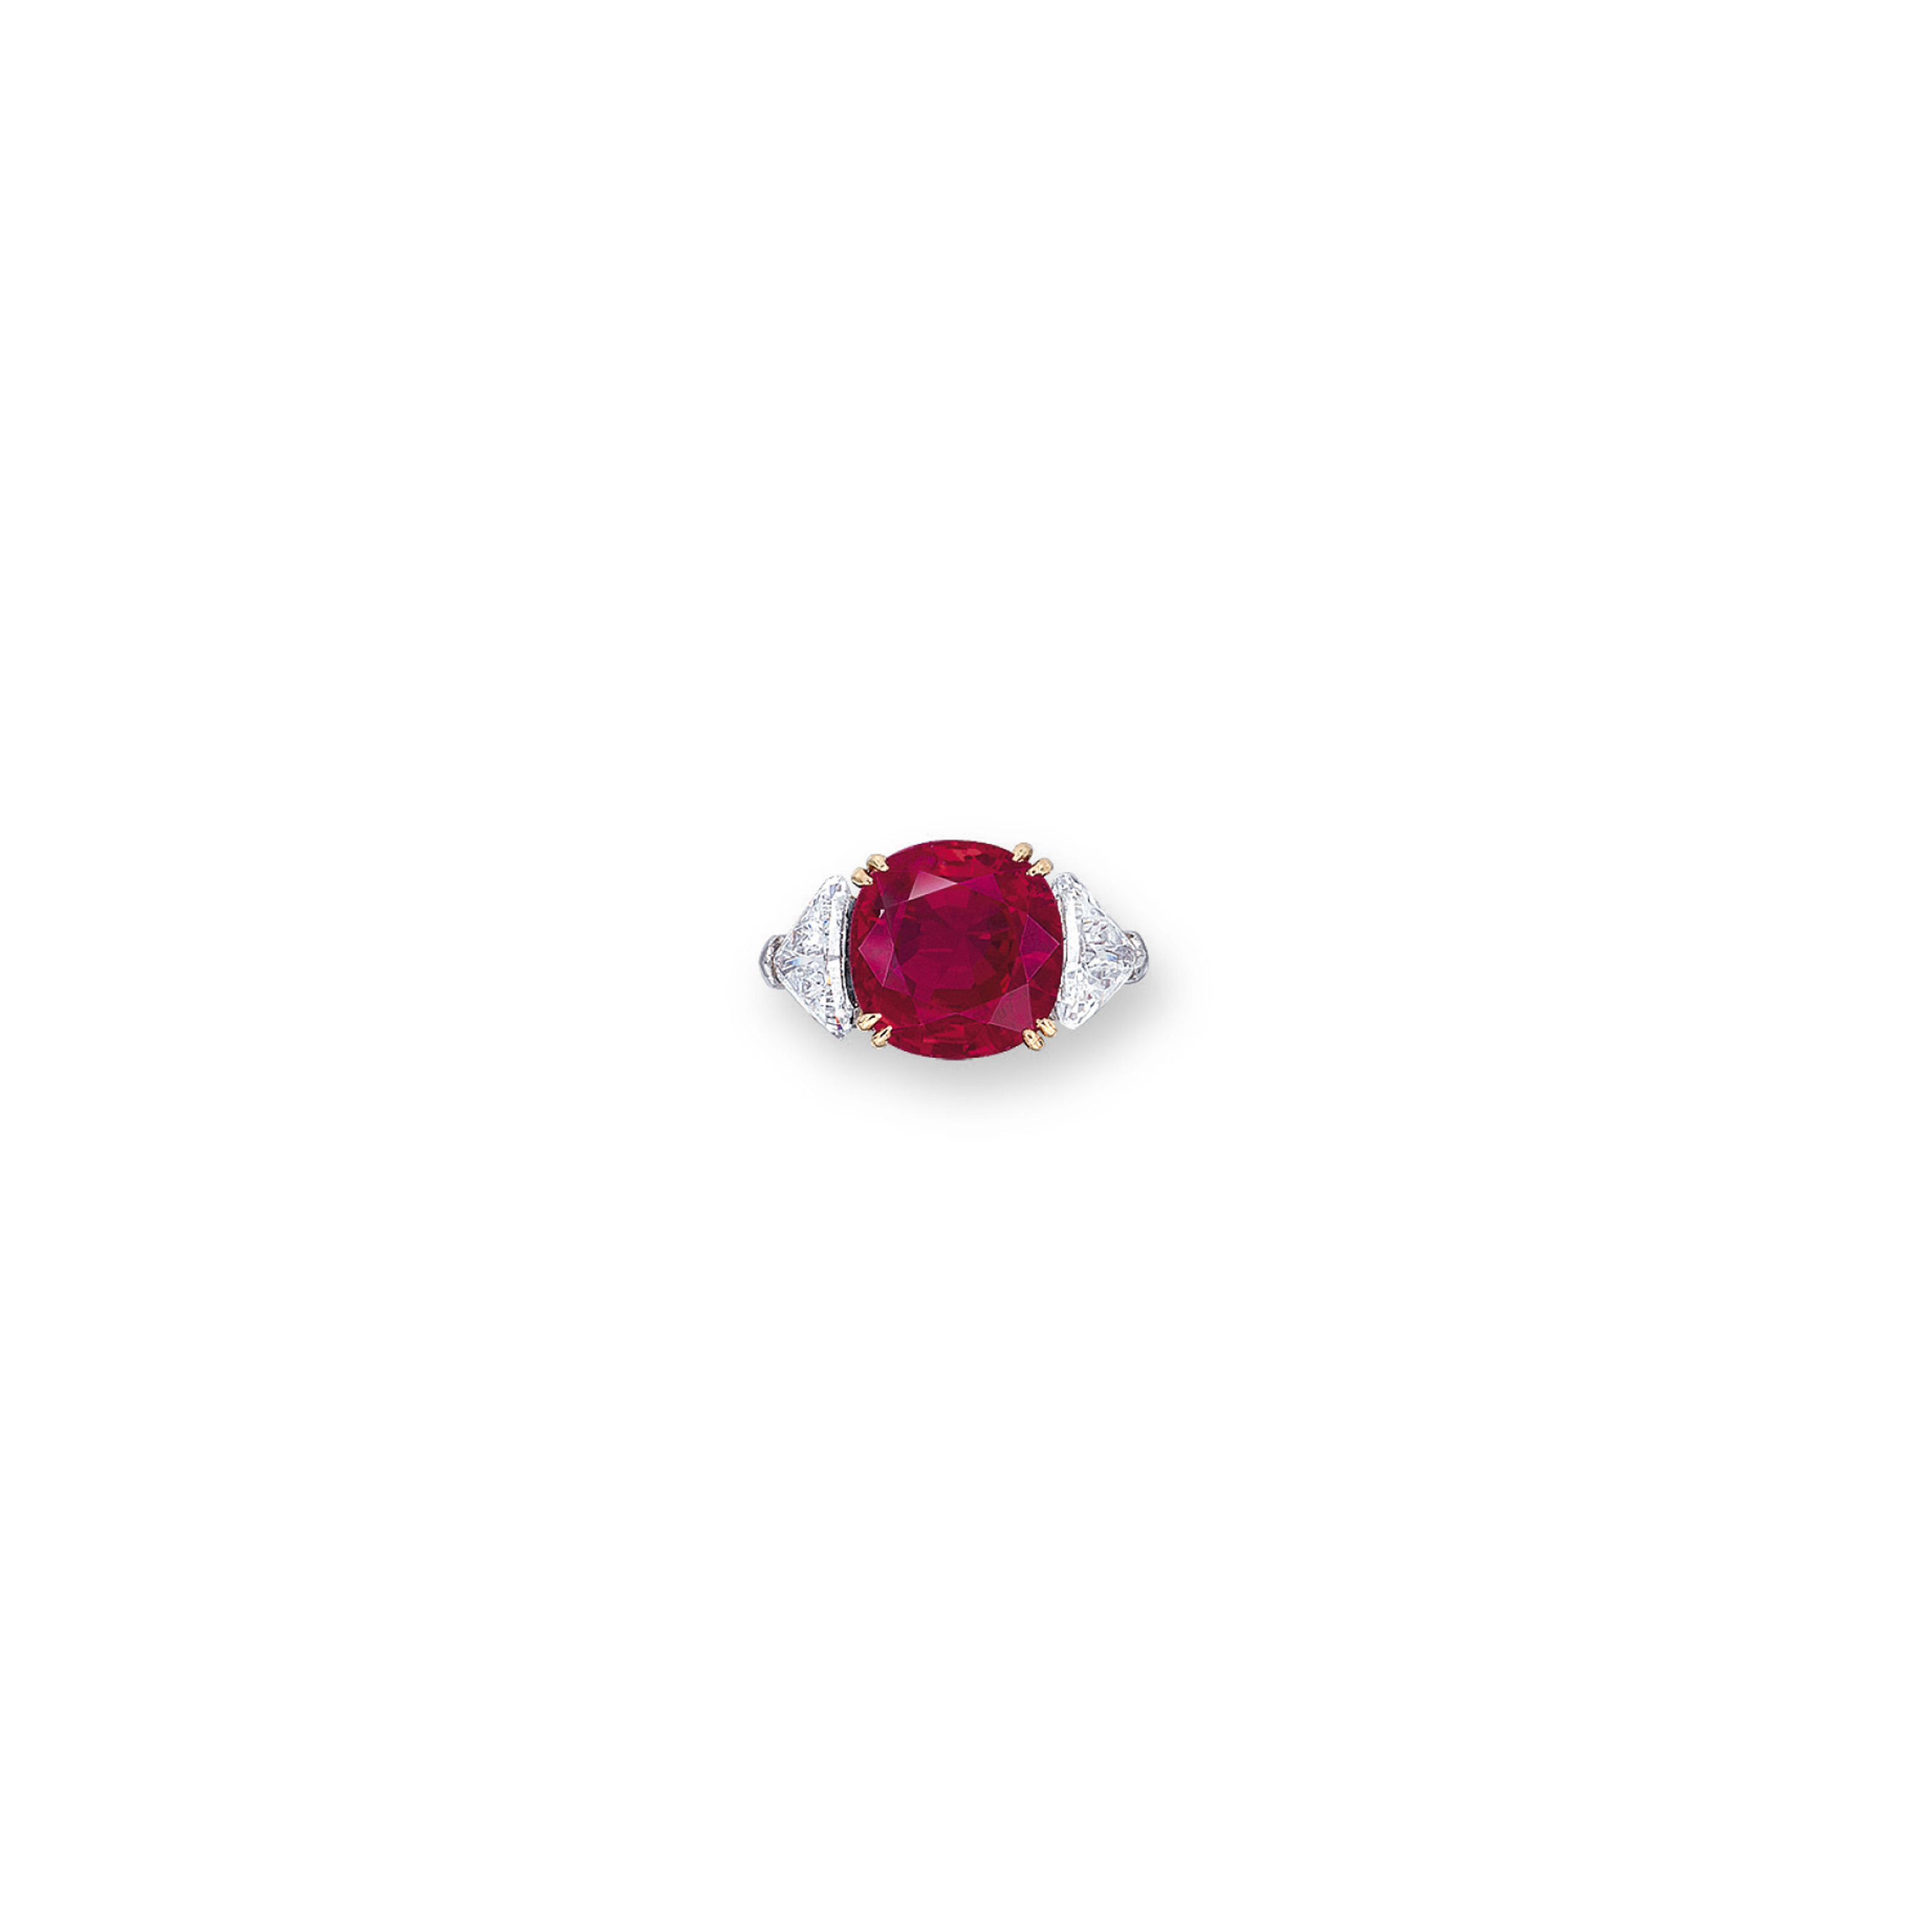 A RARE RUBY AND DIAMOND RING, BY HARRY WINSTON